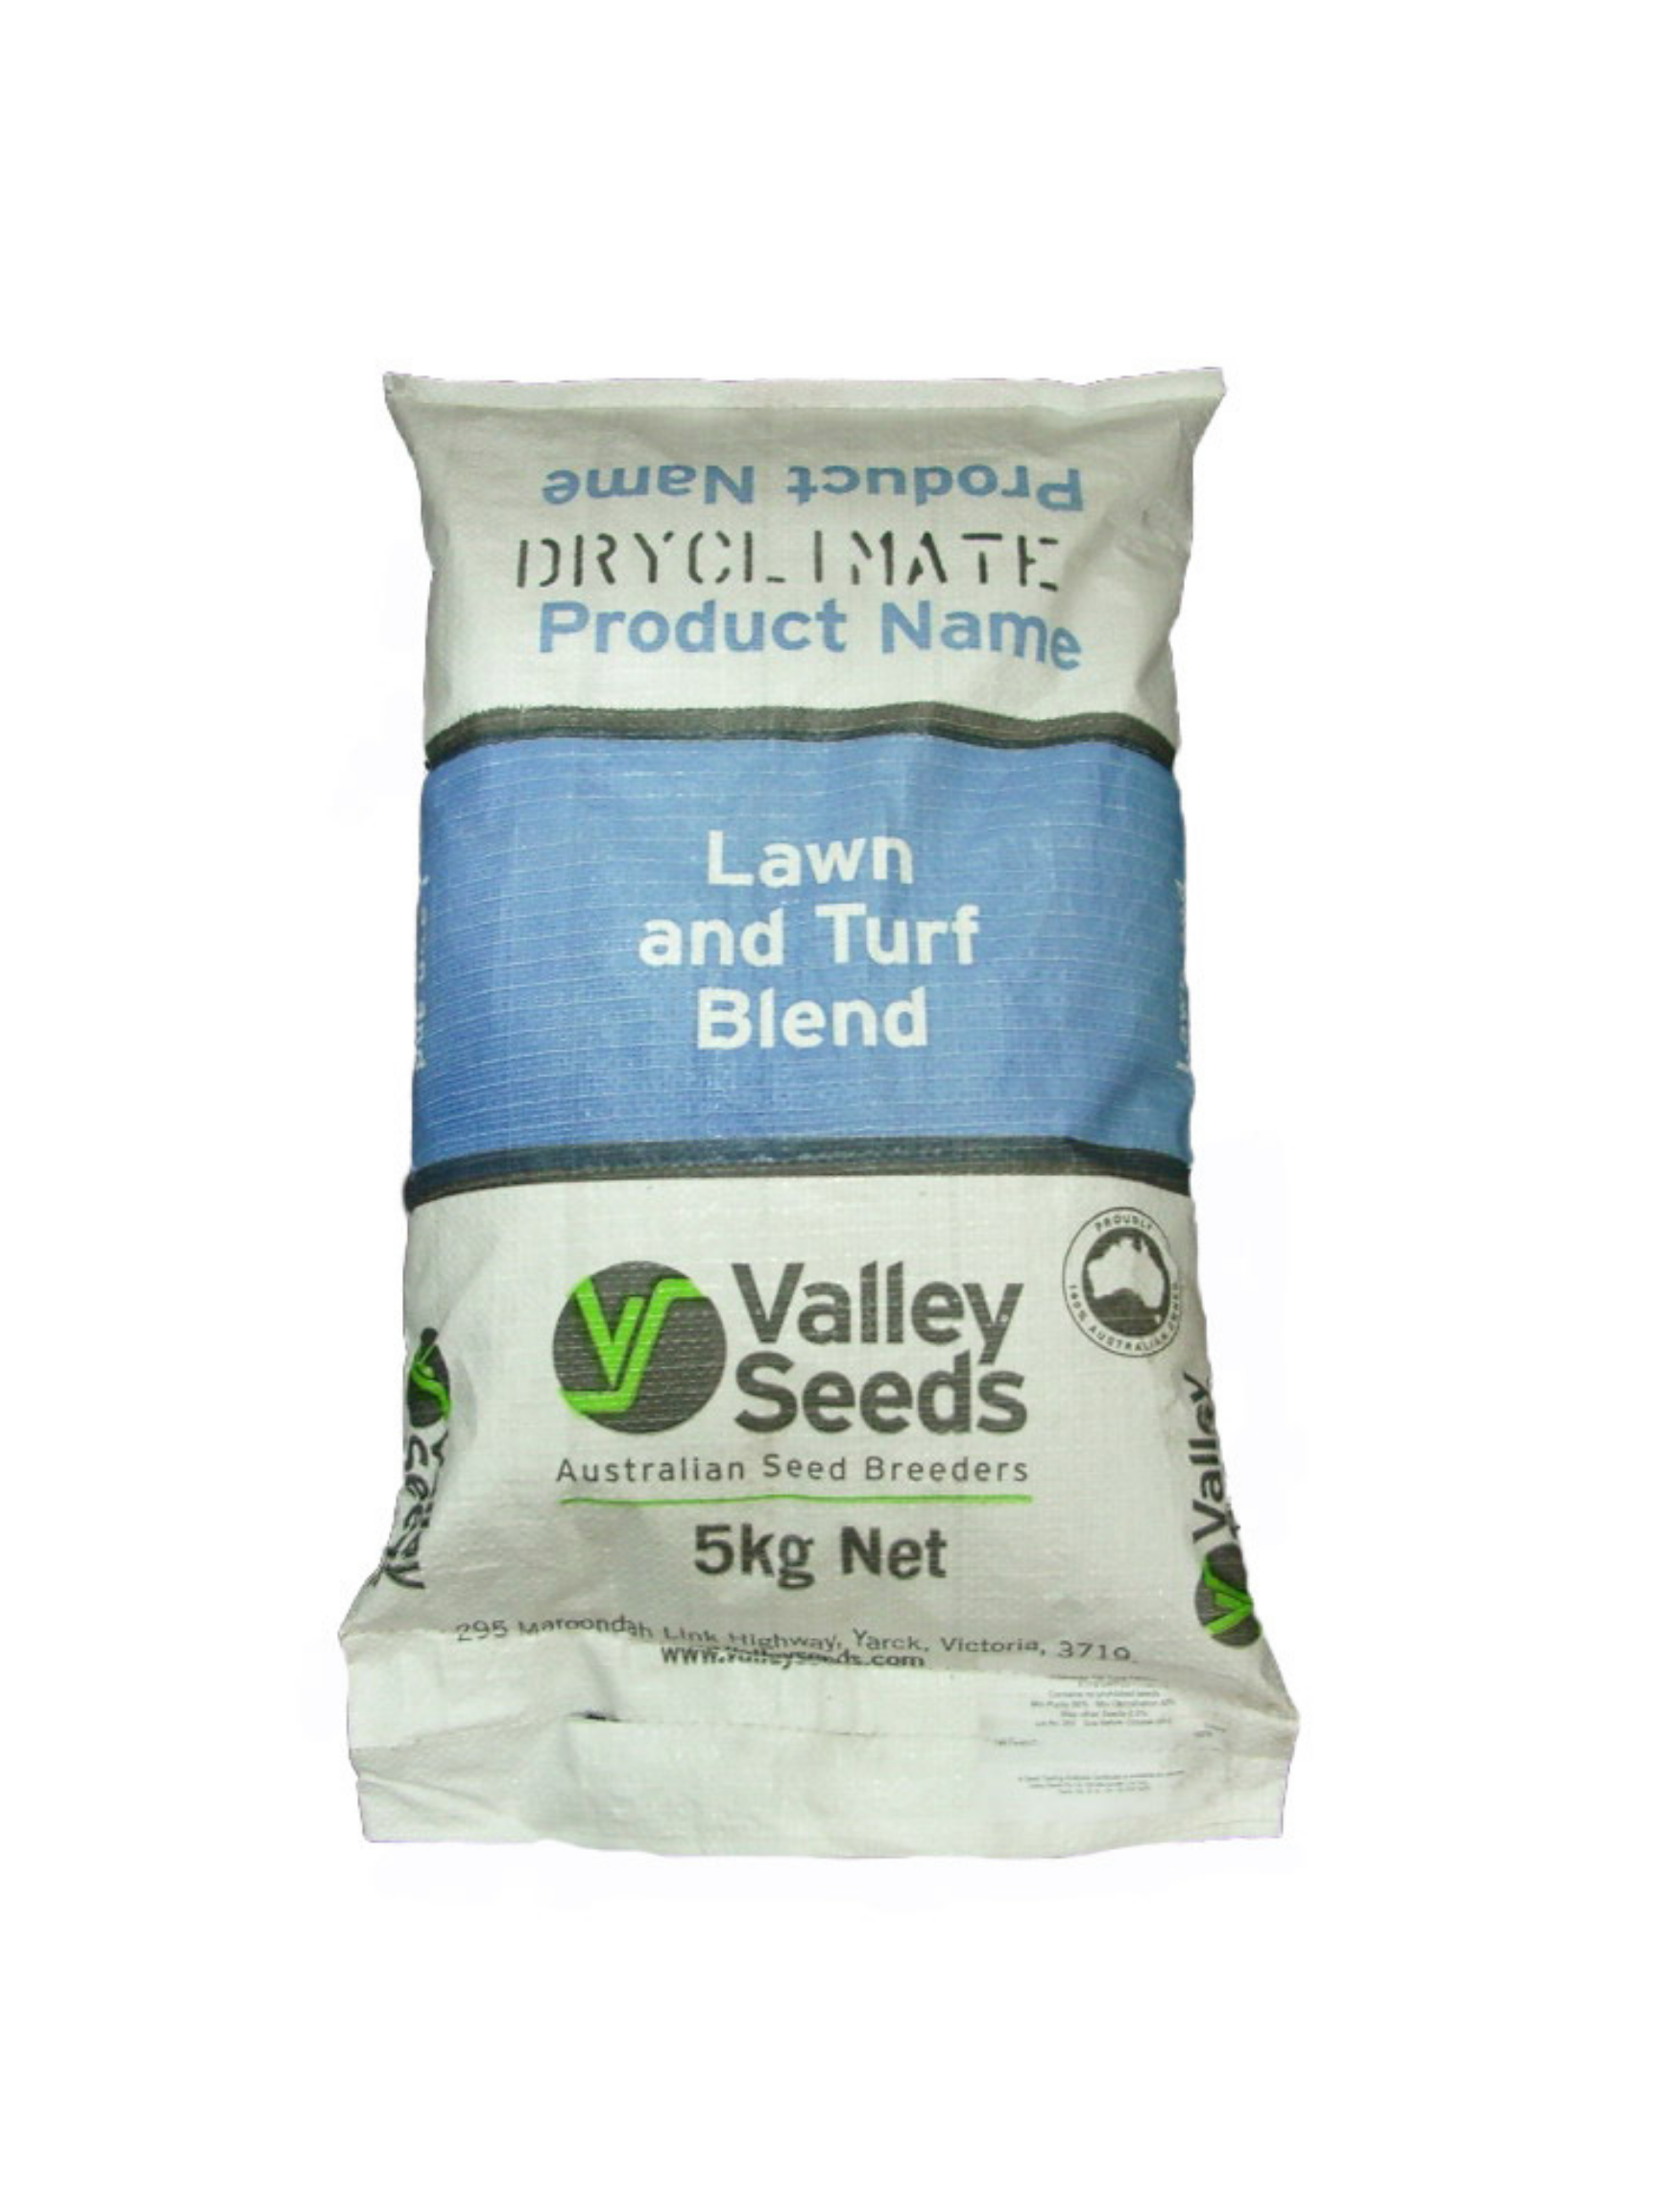 5kg Dry Climate /Tall Fescue Lawn Seed